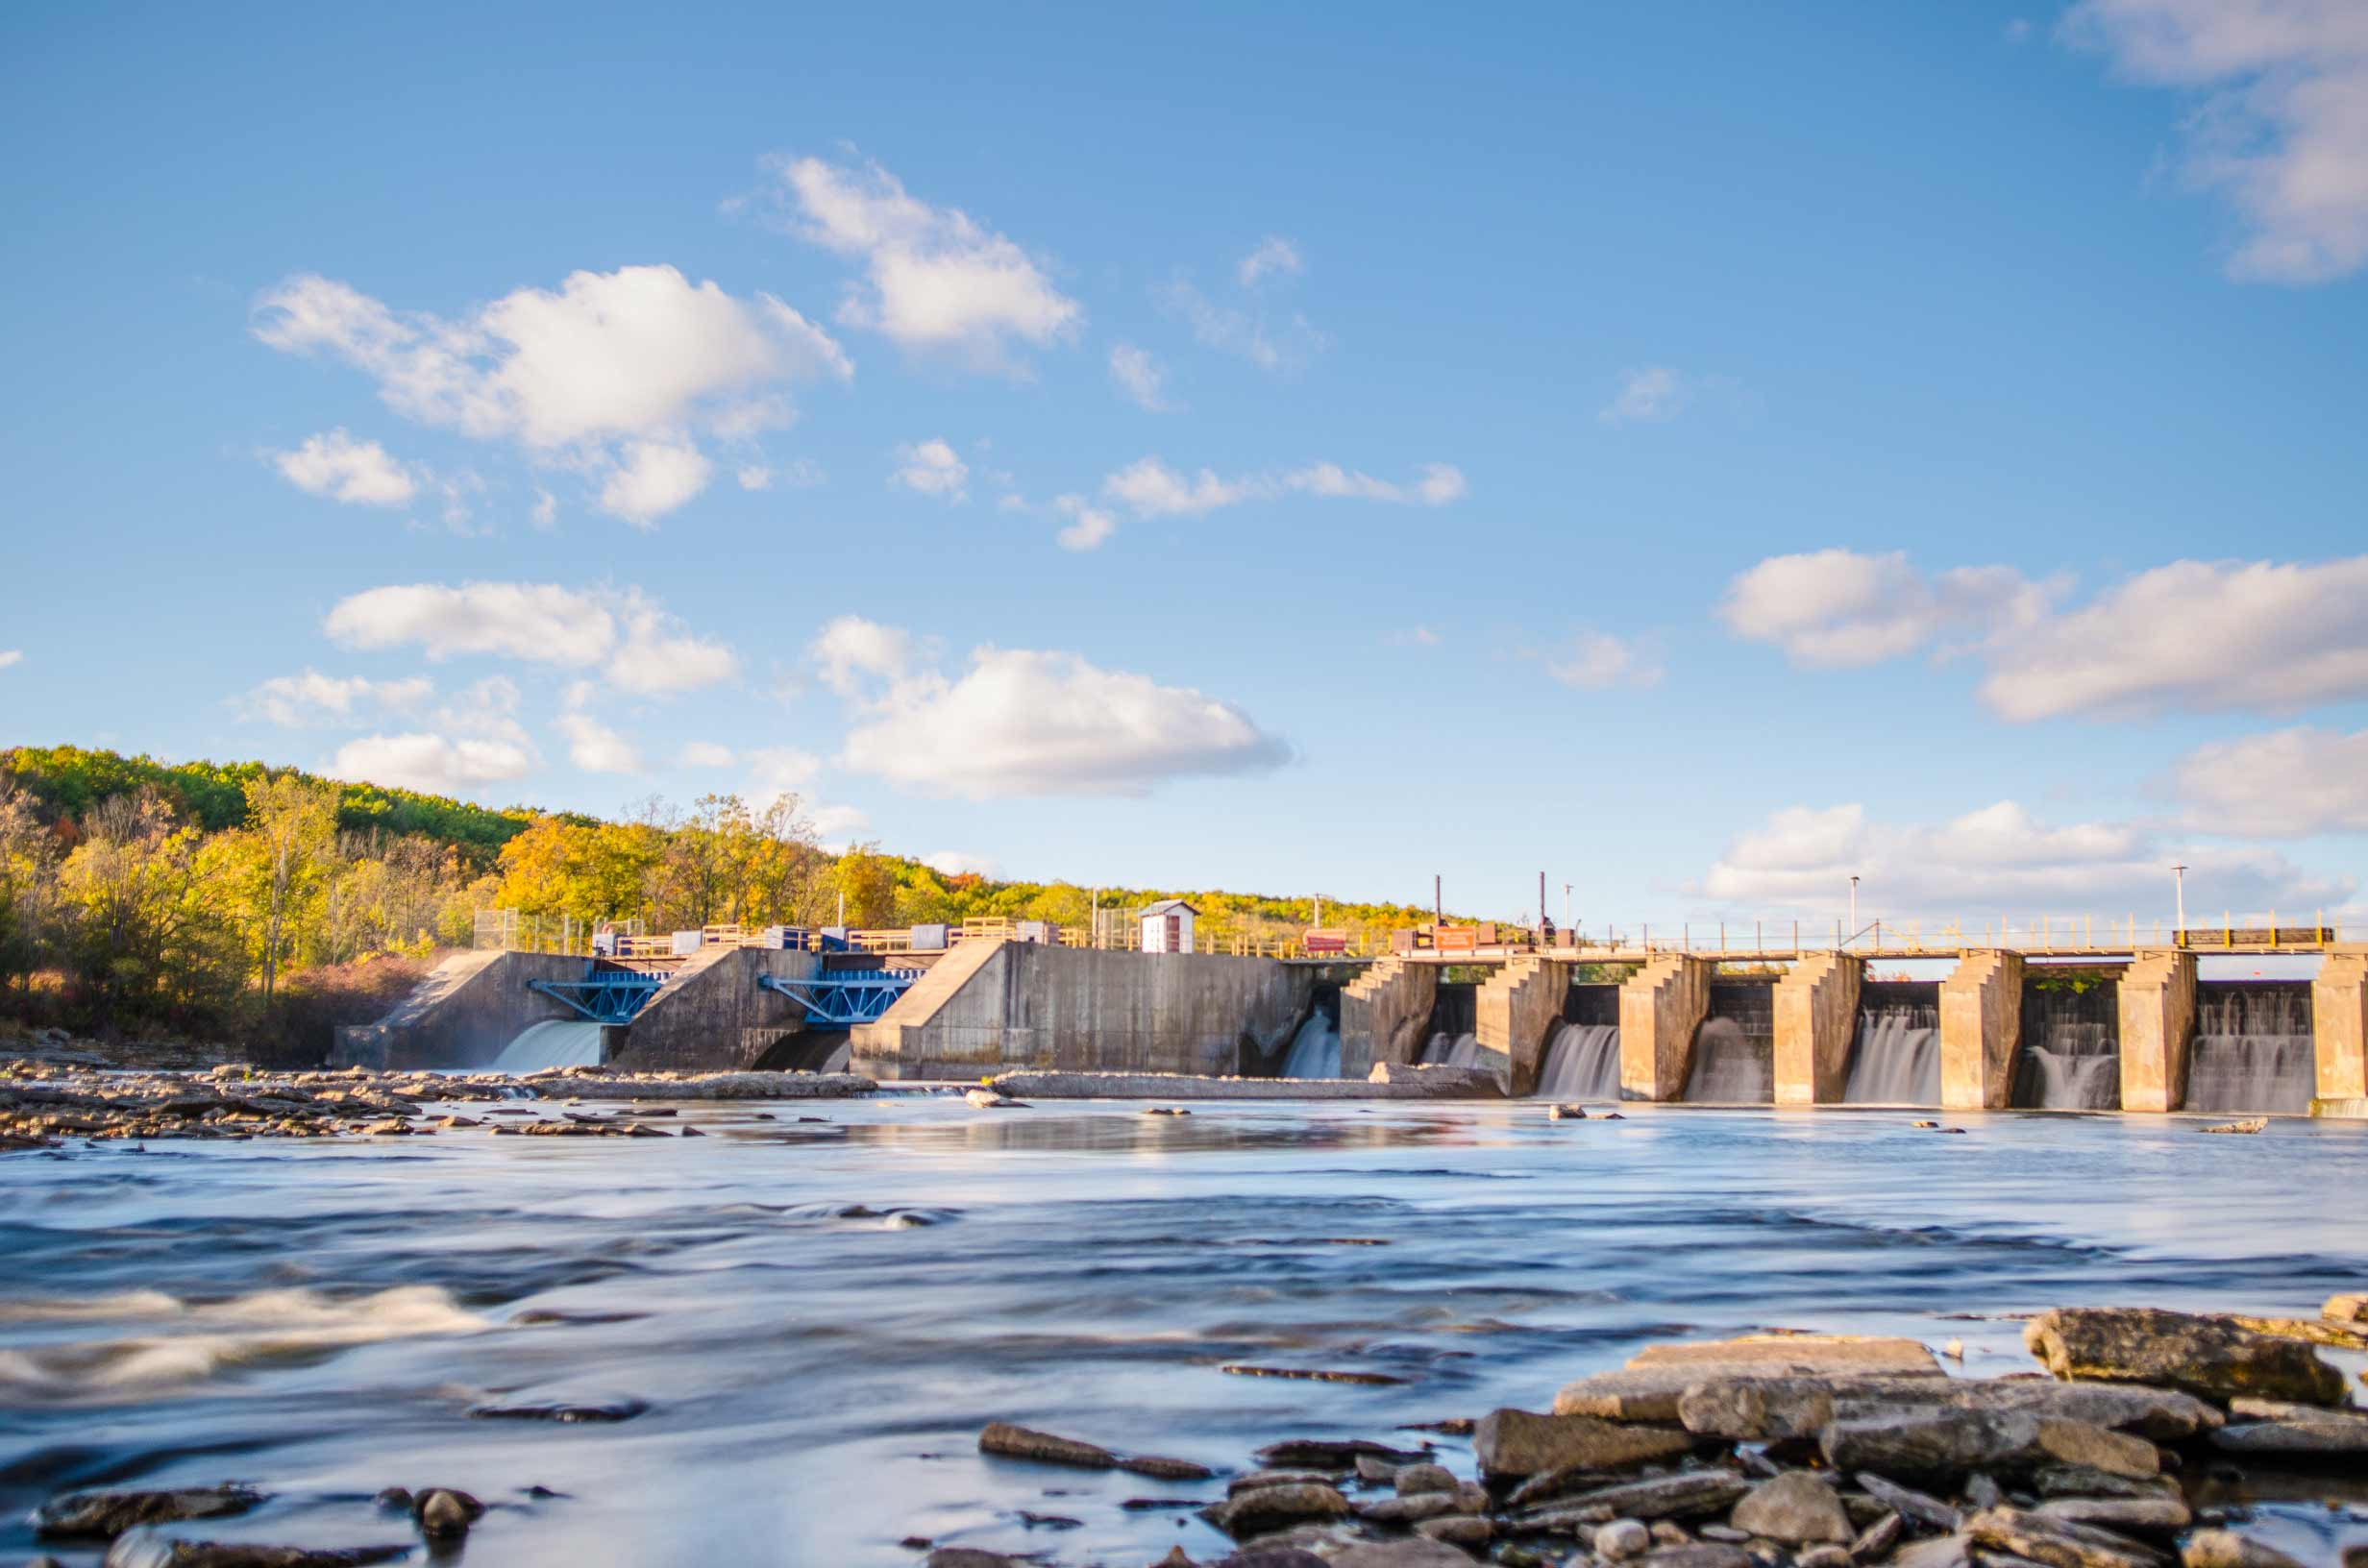 The Trent River dam and locks in Campbellford